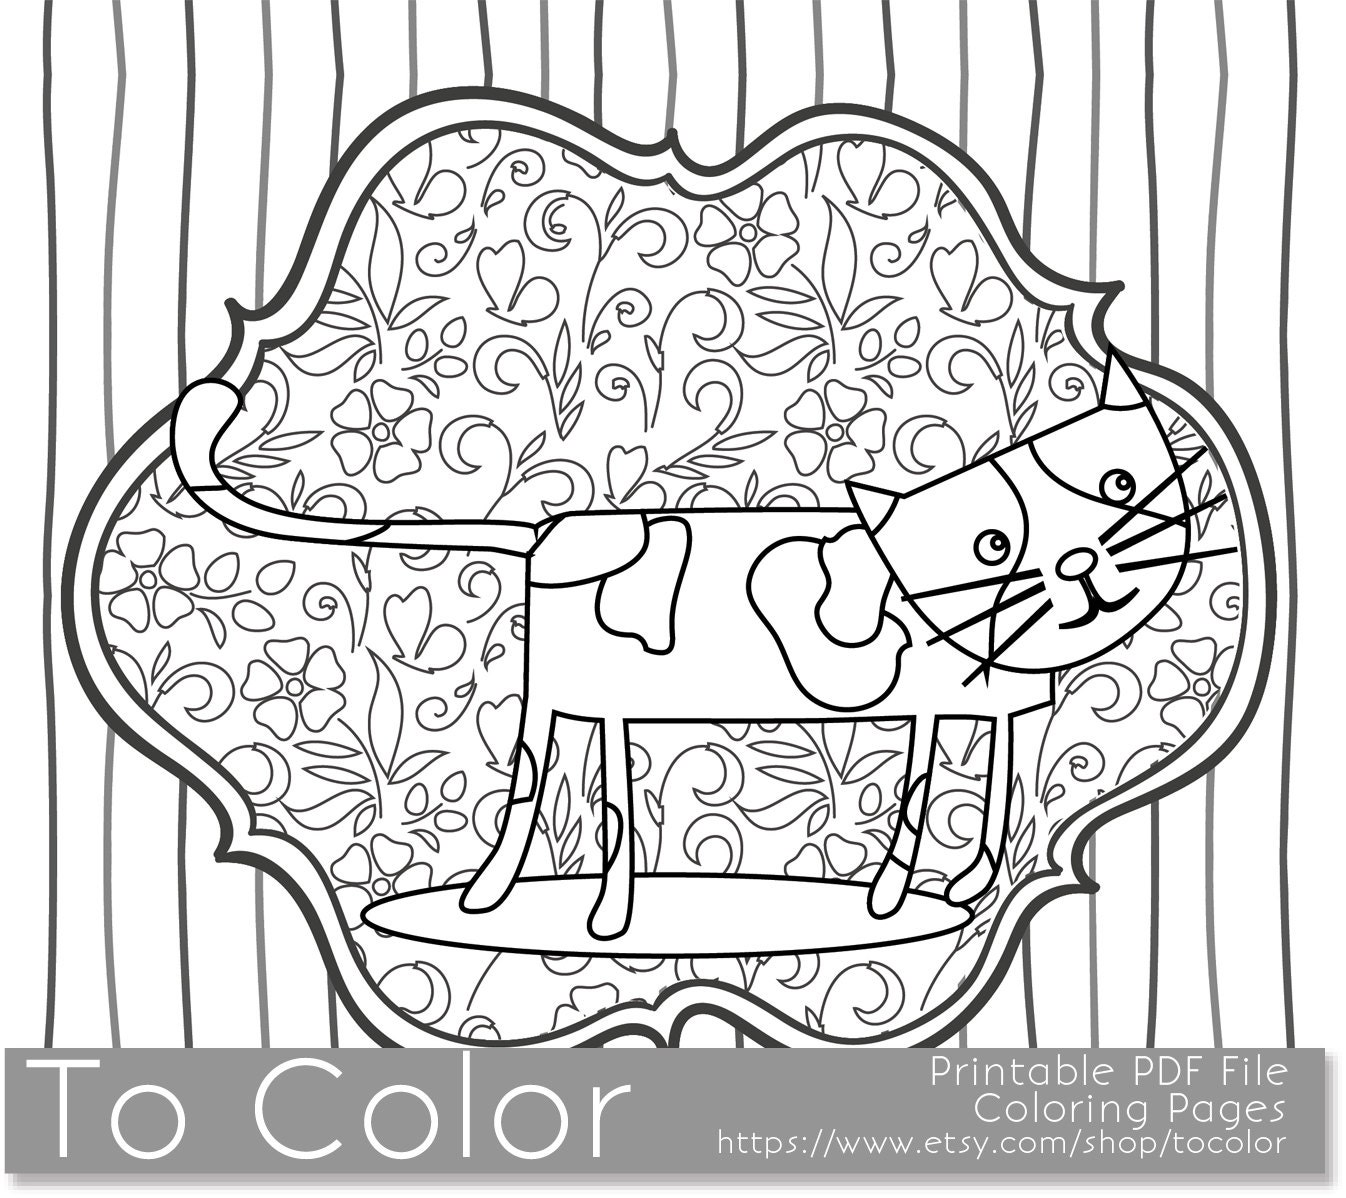 whimsical flower coloring pages - photo#29